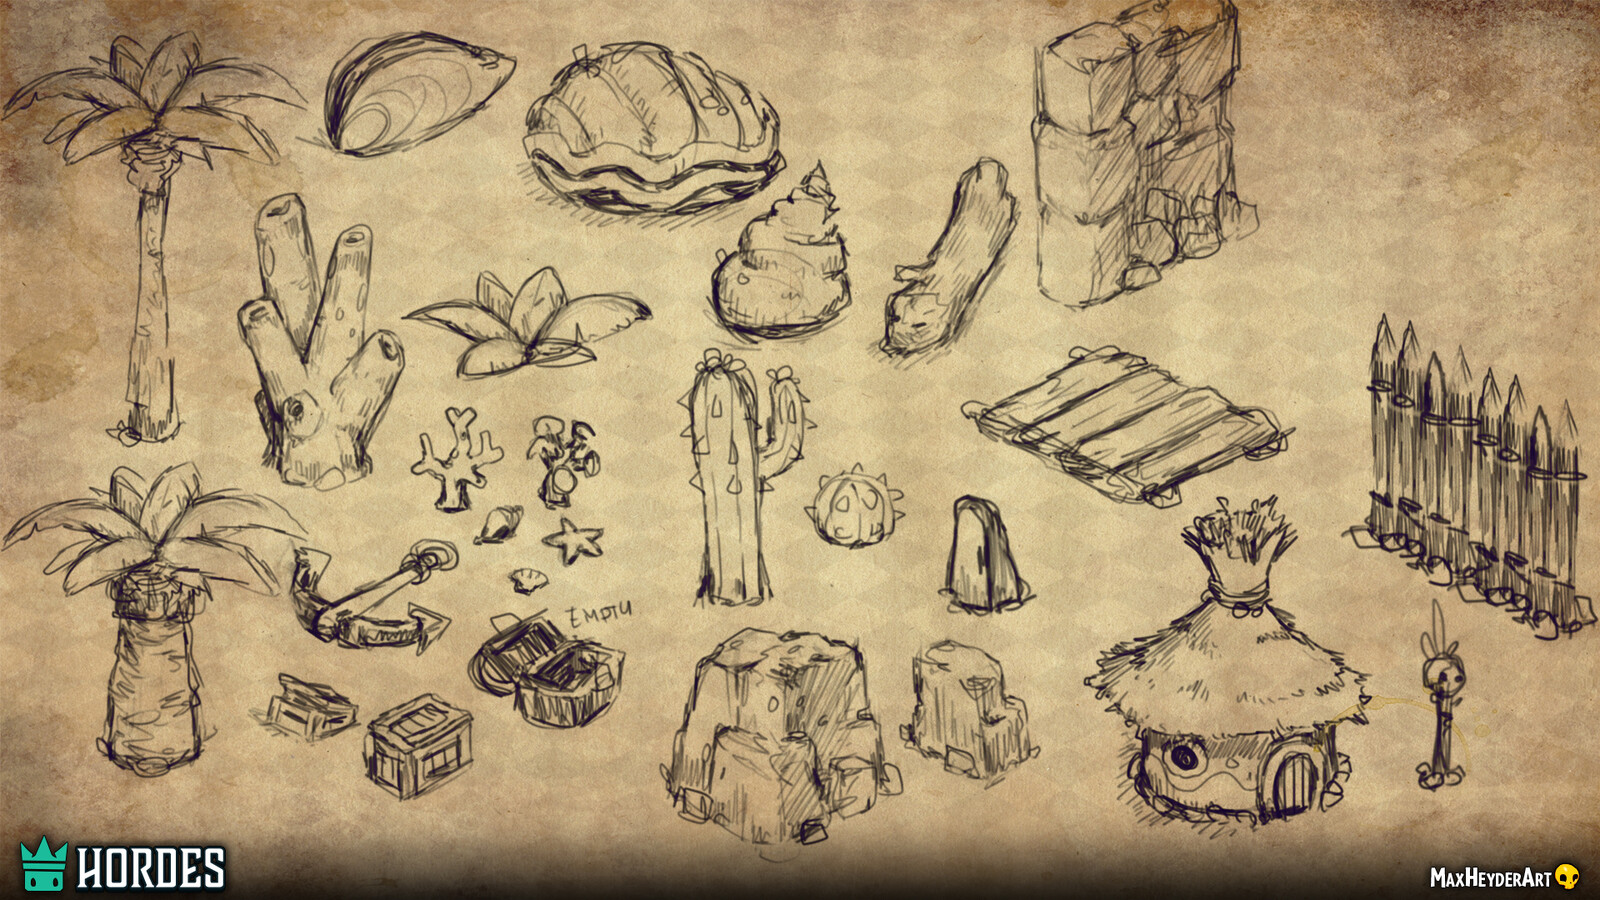 Not all assets that I concepted, we ended up using. In this case, we figured out that the assets were too specific for just one biome. We ended up reducing the number of assets tremendously, to ensure top performance, even on low-end devices.